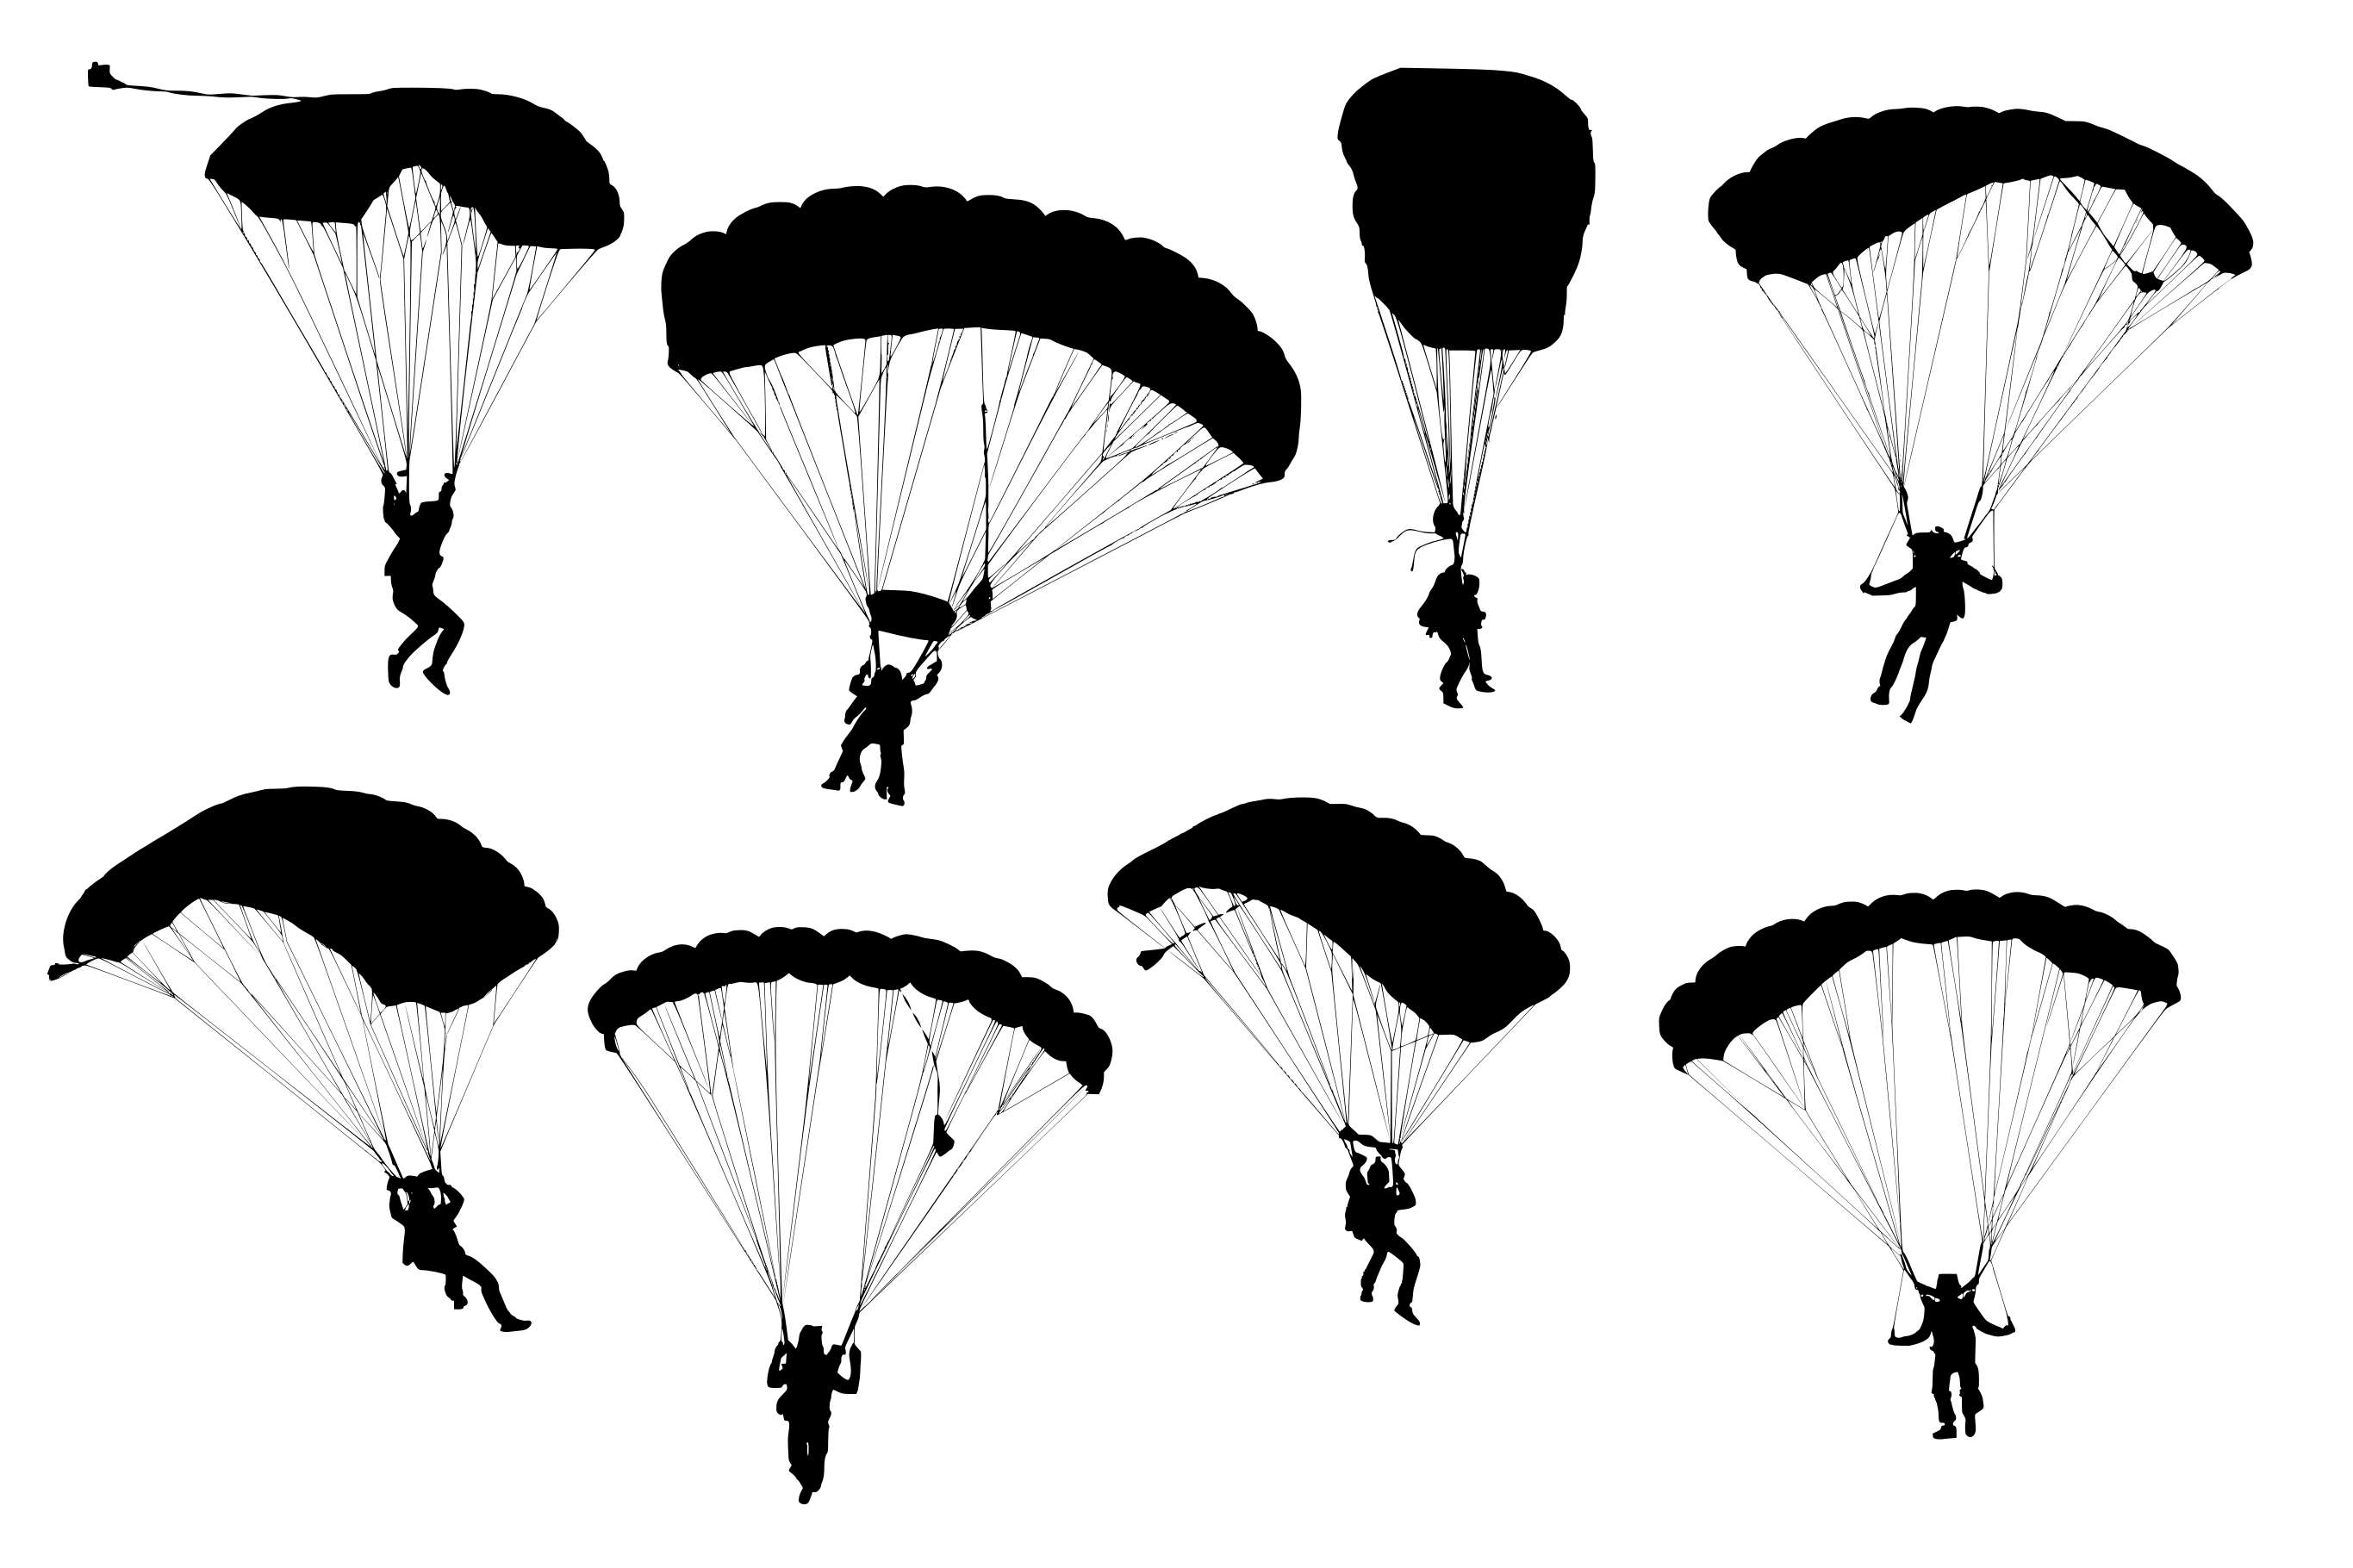 8-parachute-skydiver-silhouette-cover.jpg